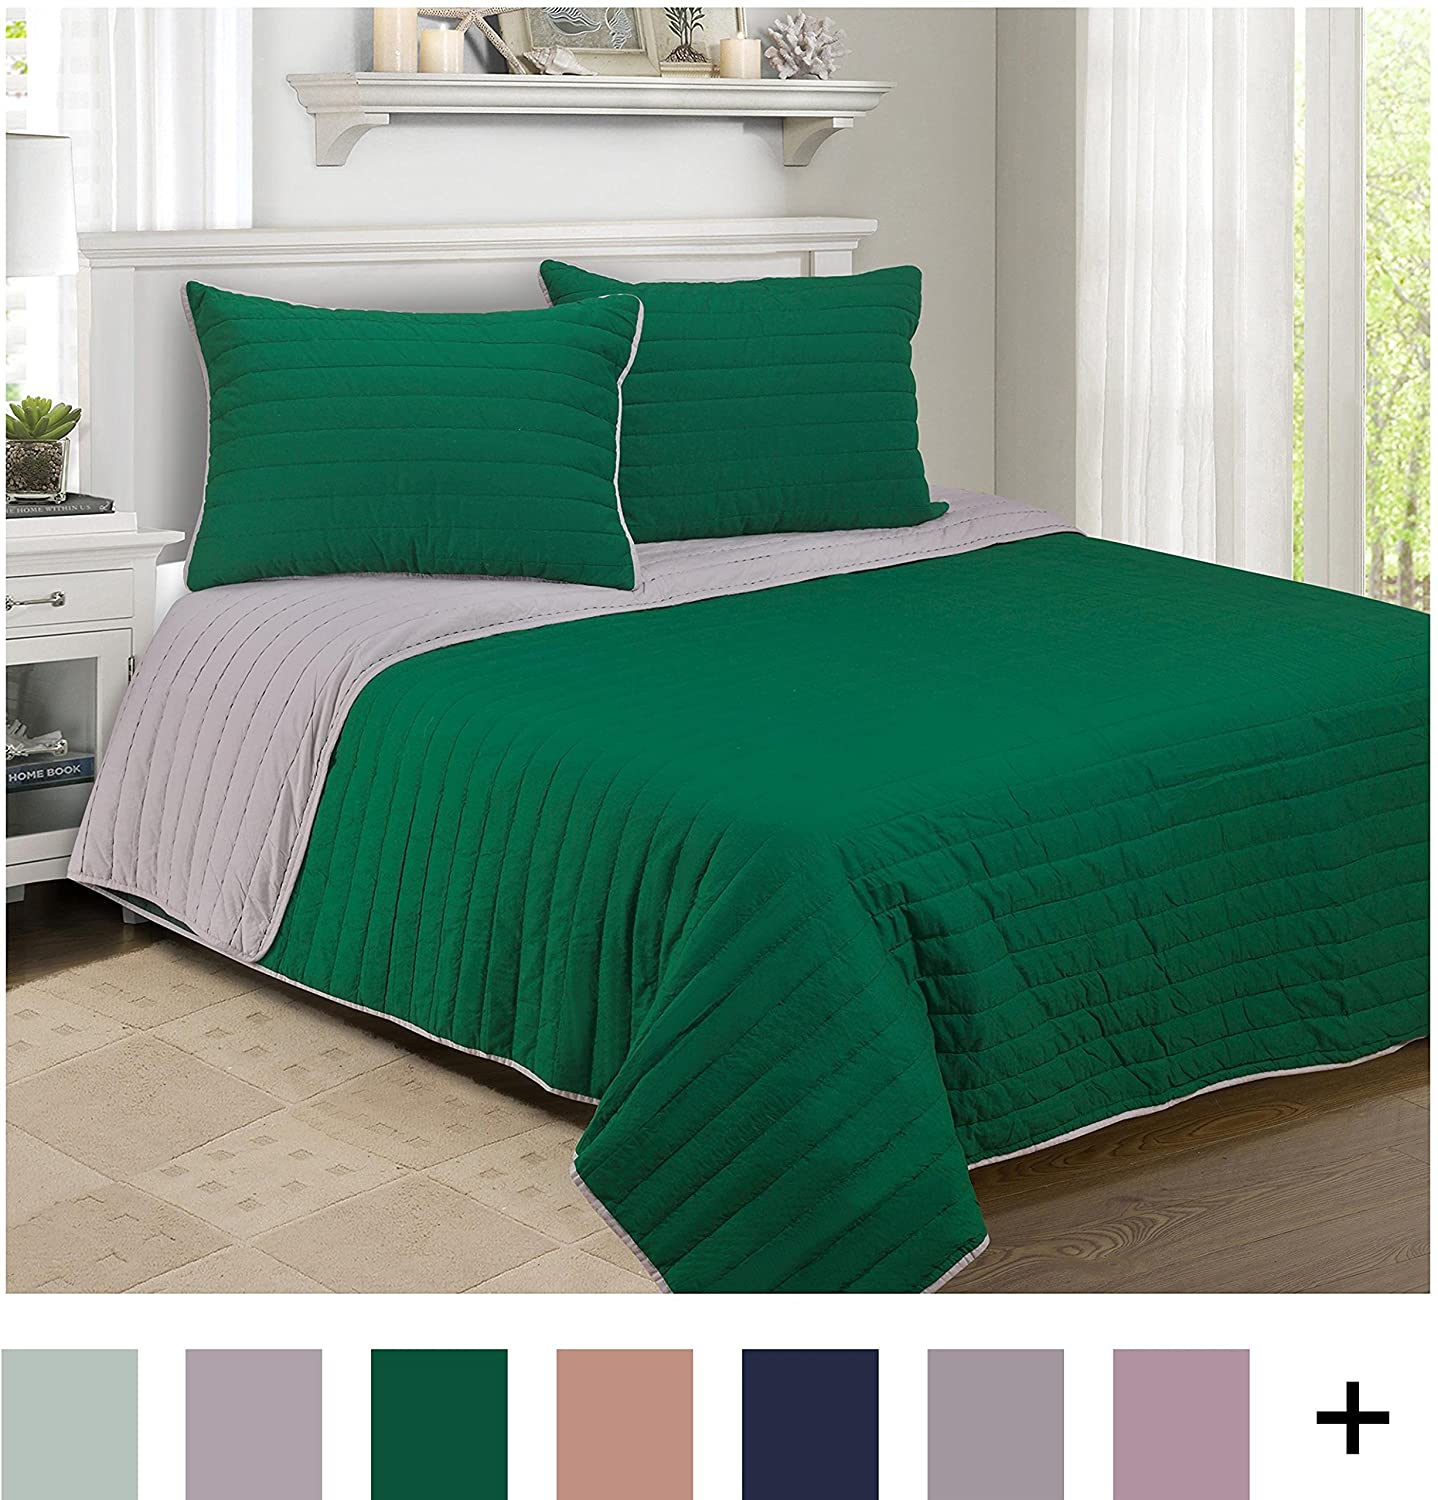 Completely new Hunter Green Comforters Sale – Ease Bedding with Style FQ64